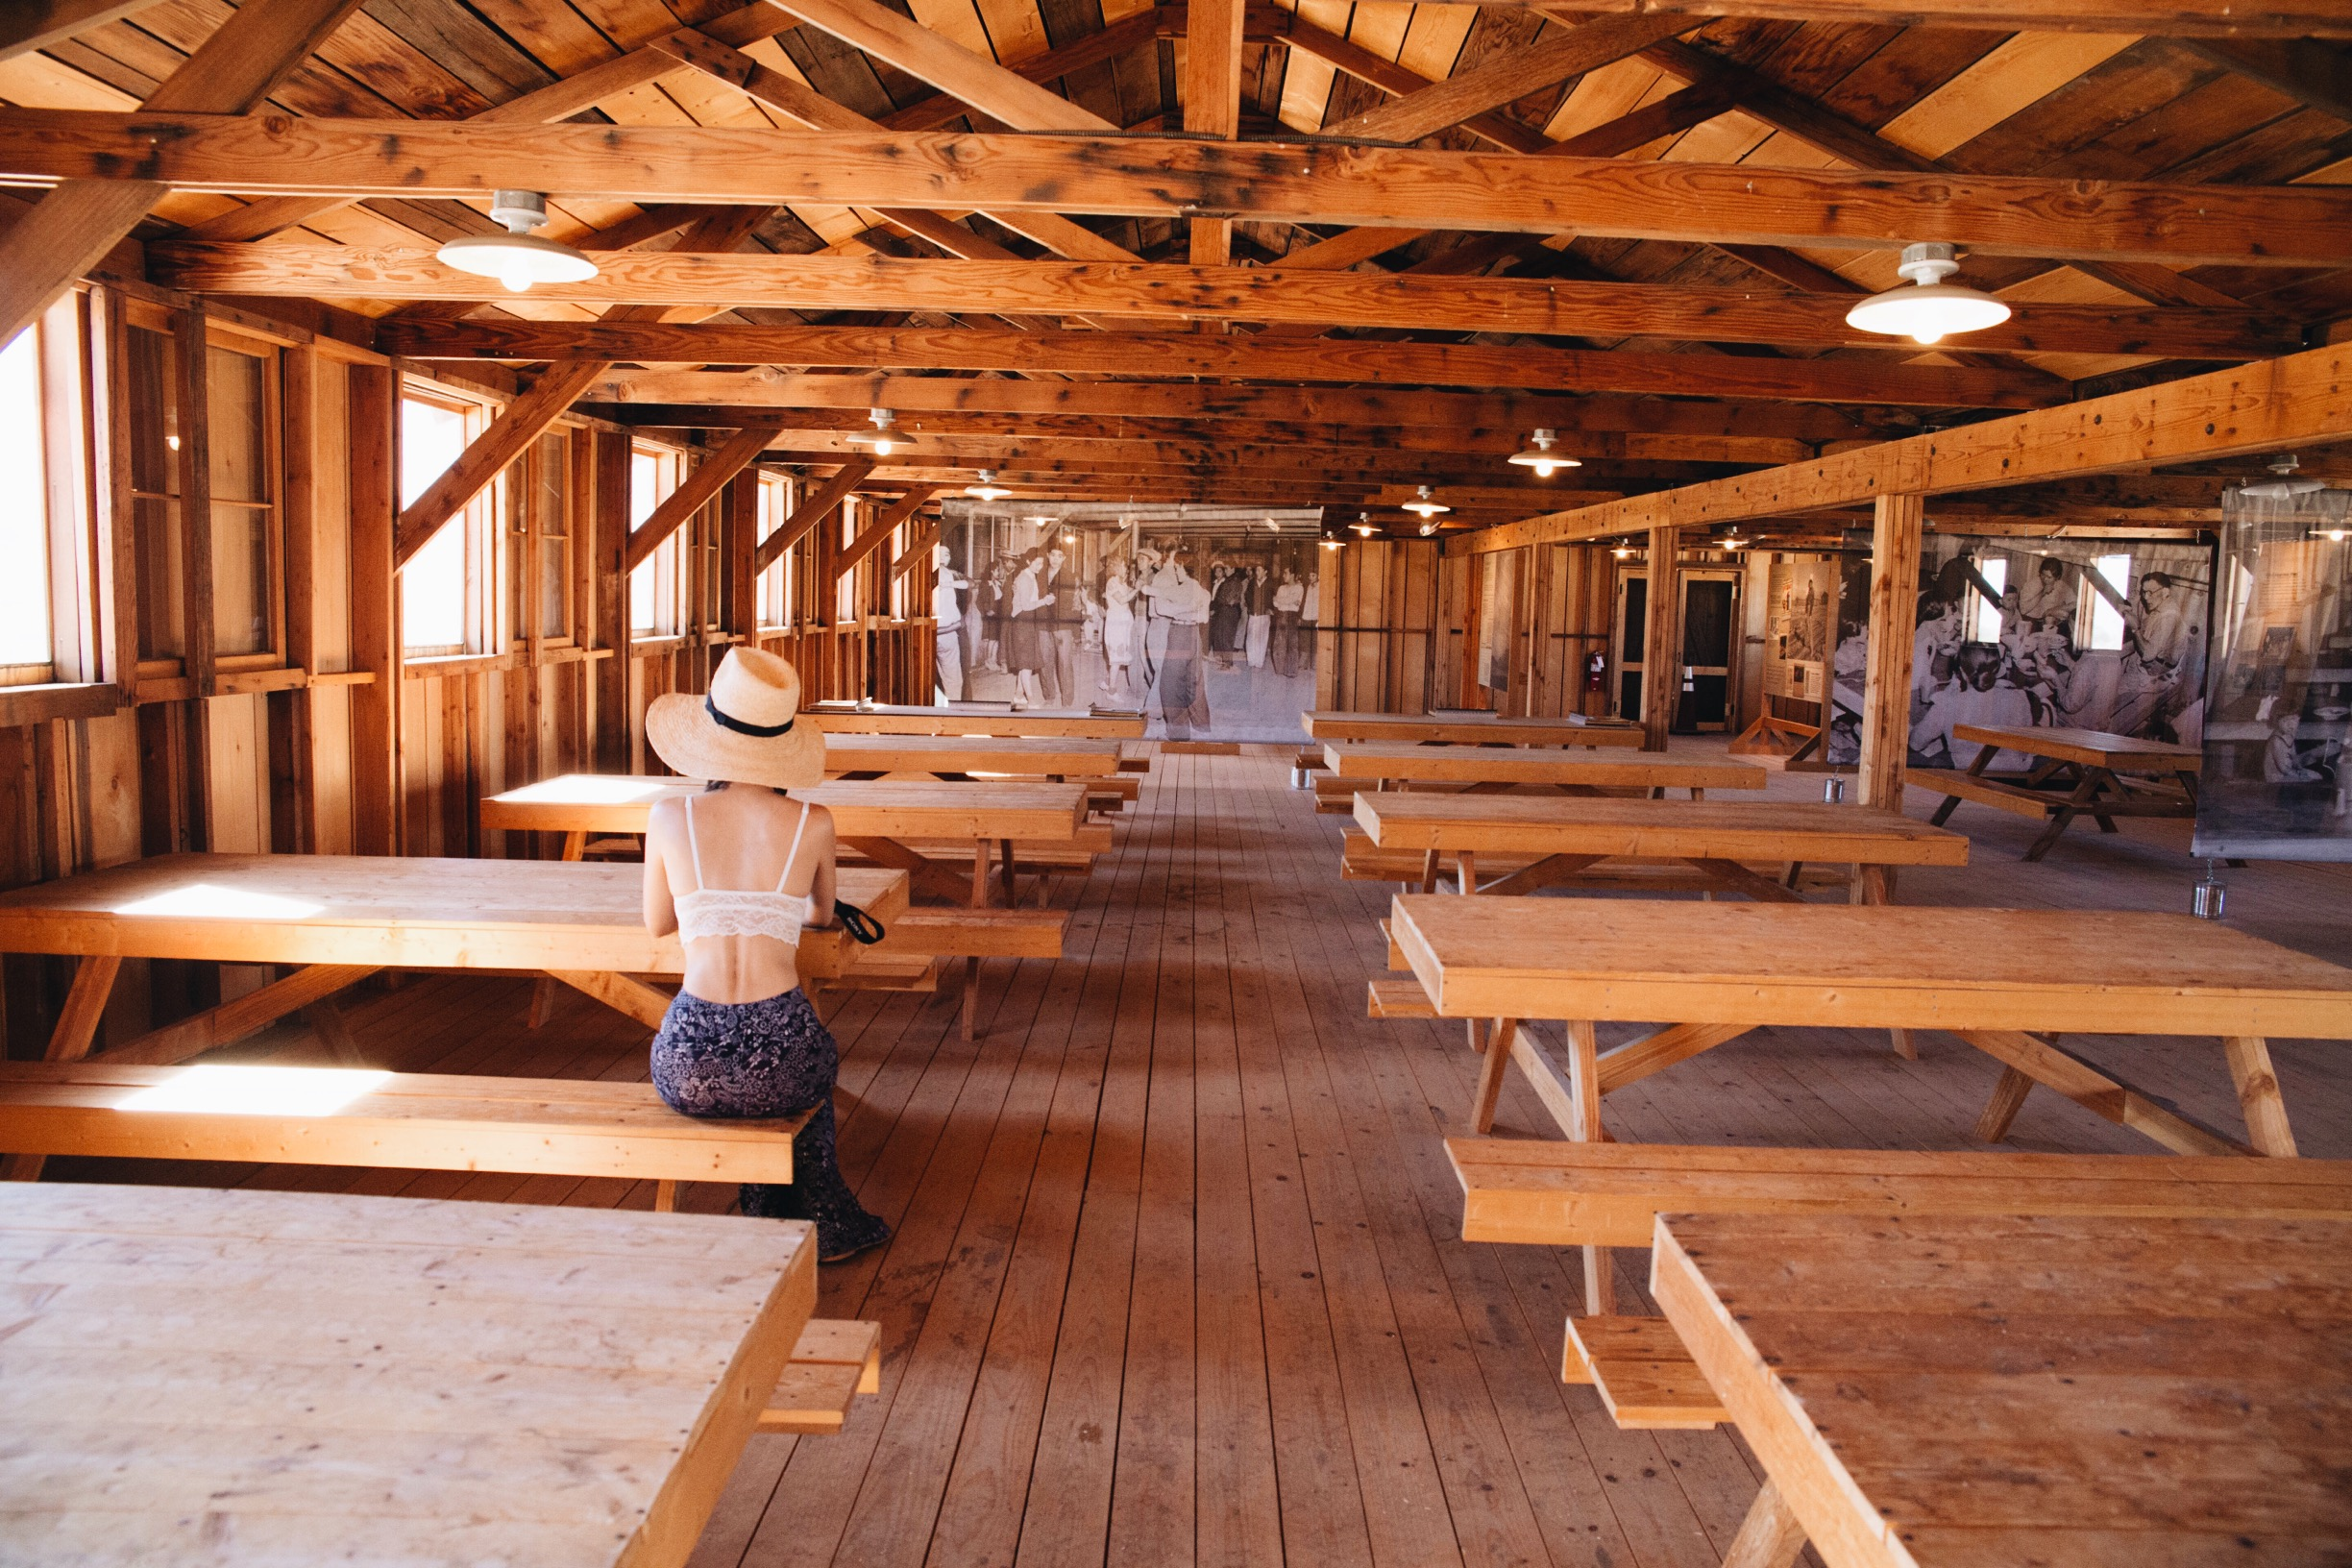 Inside the Mess Hall